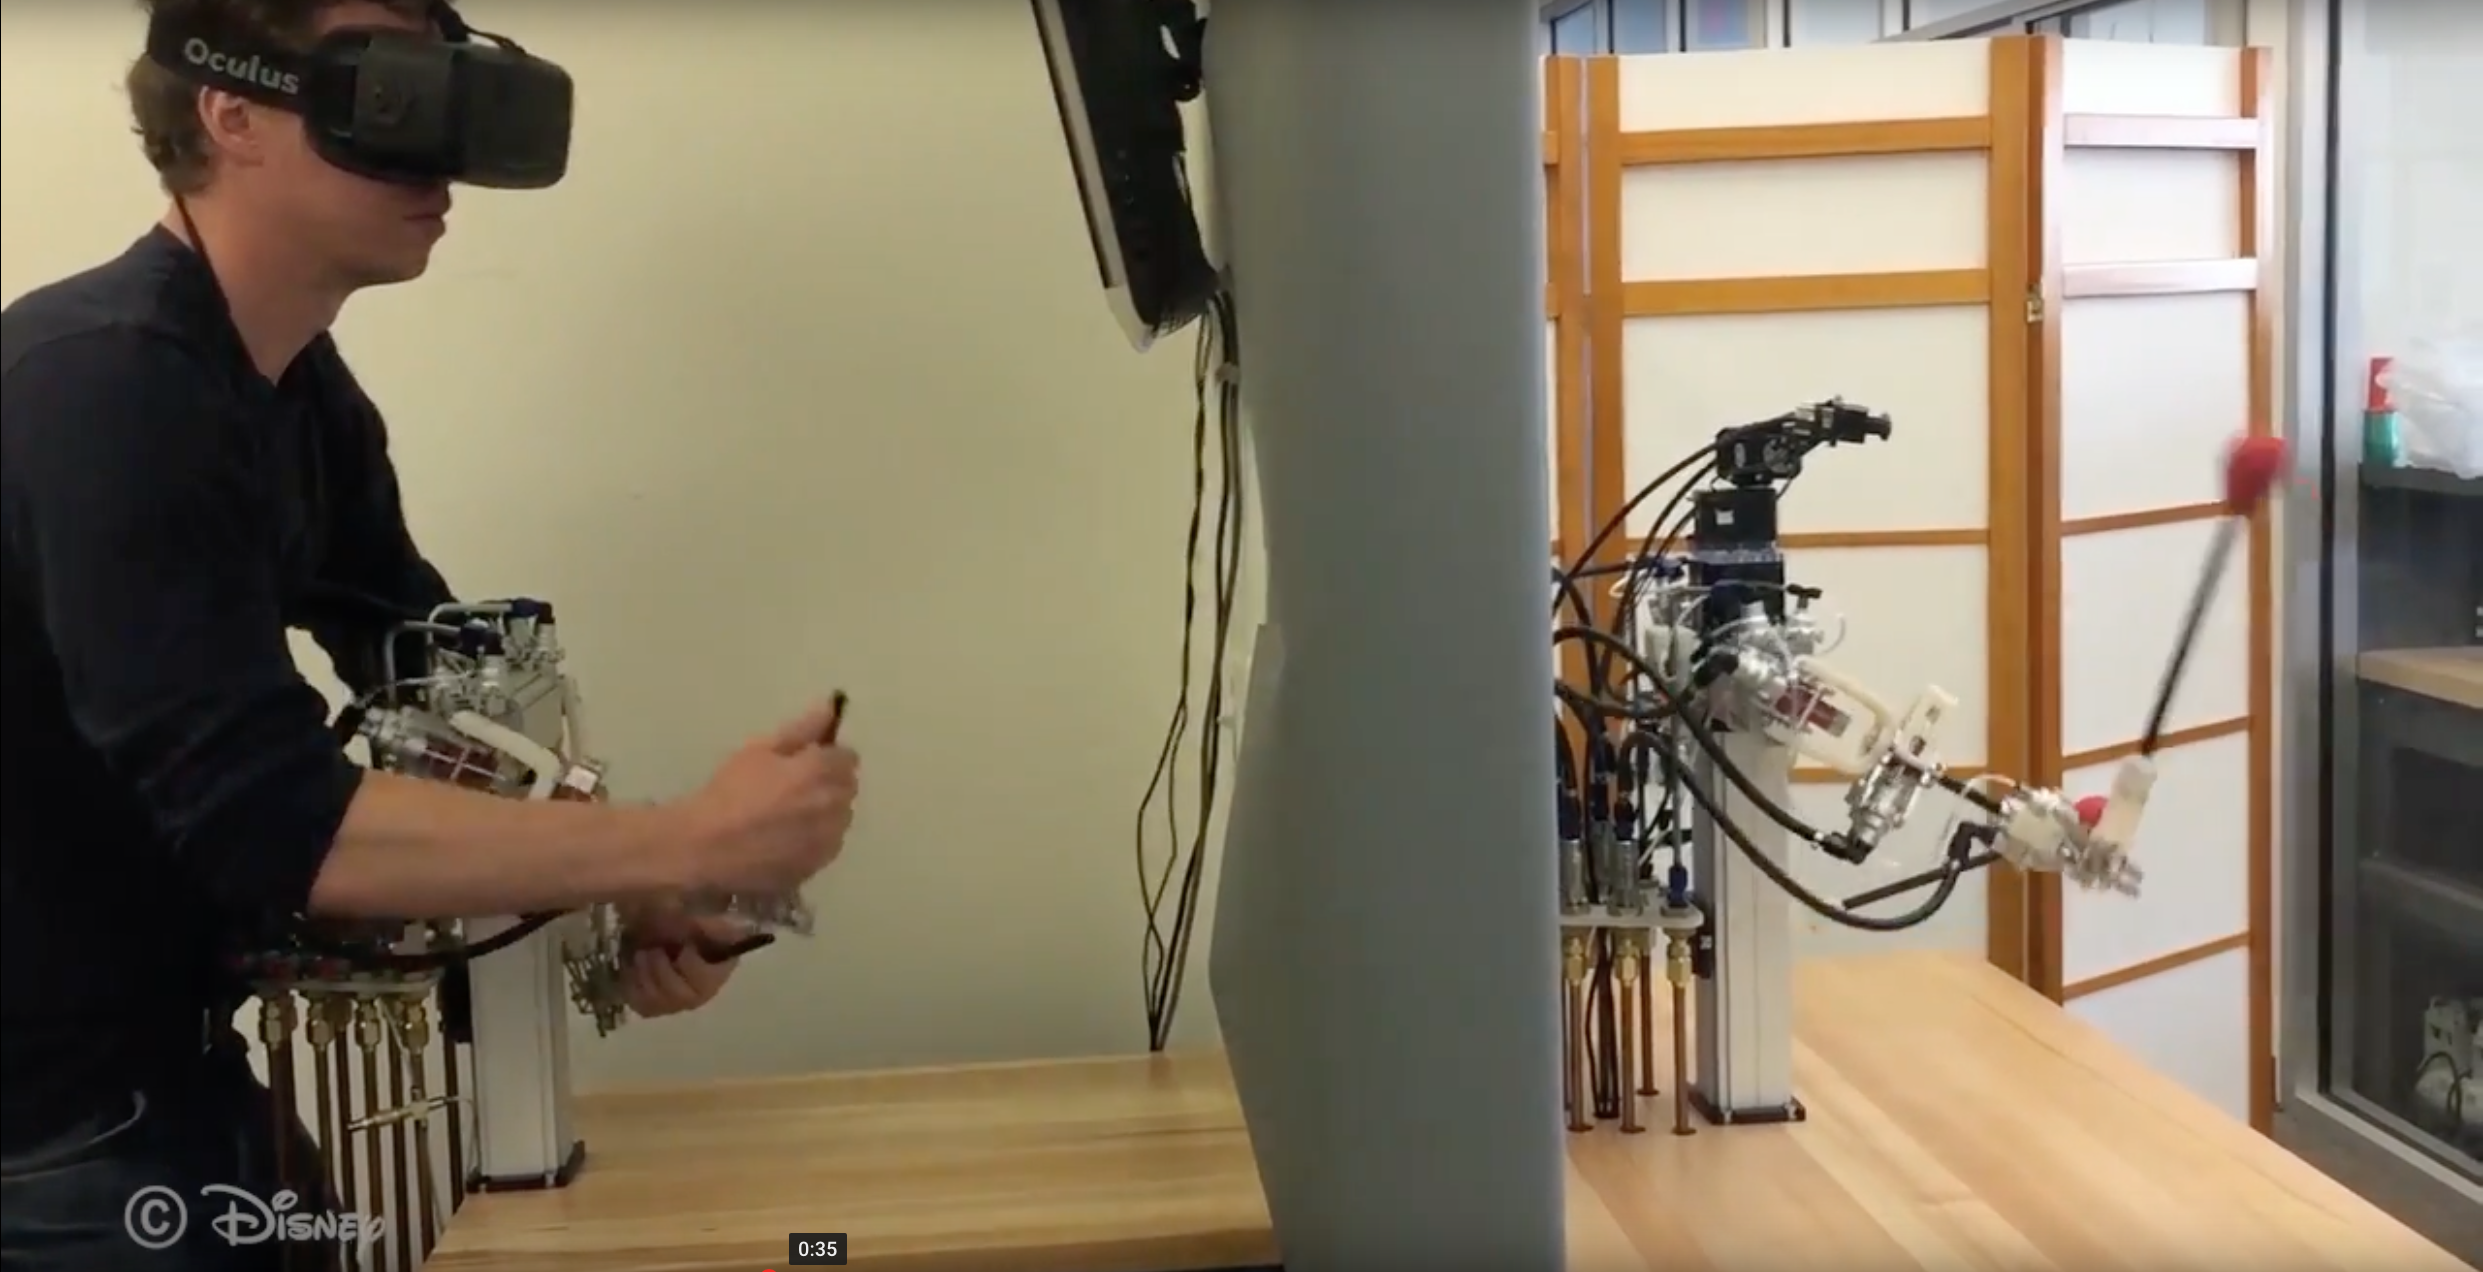 Disney's remote control robots move just like people